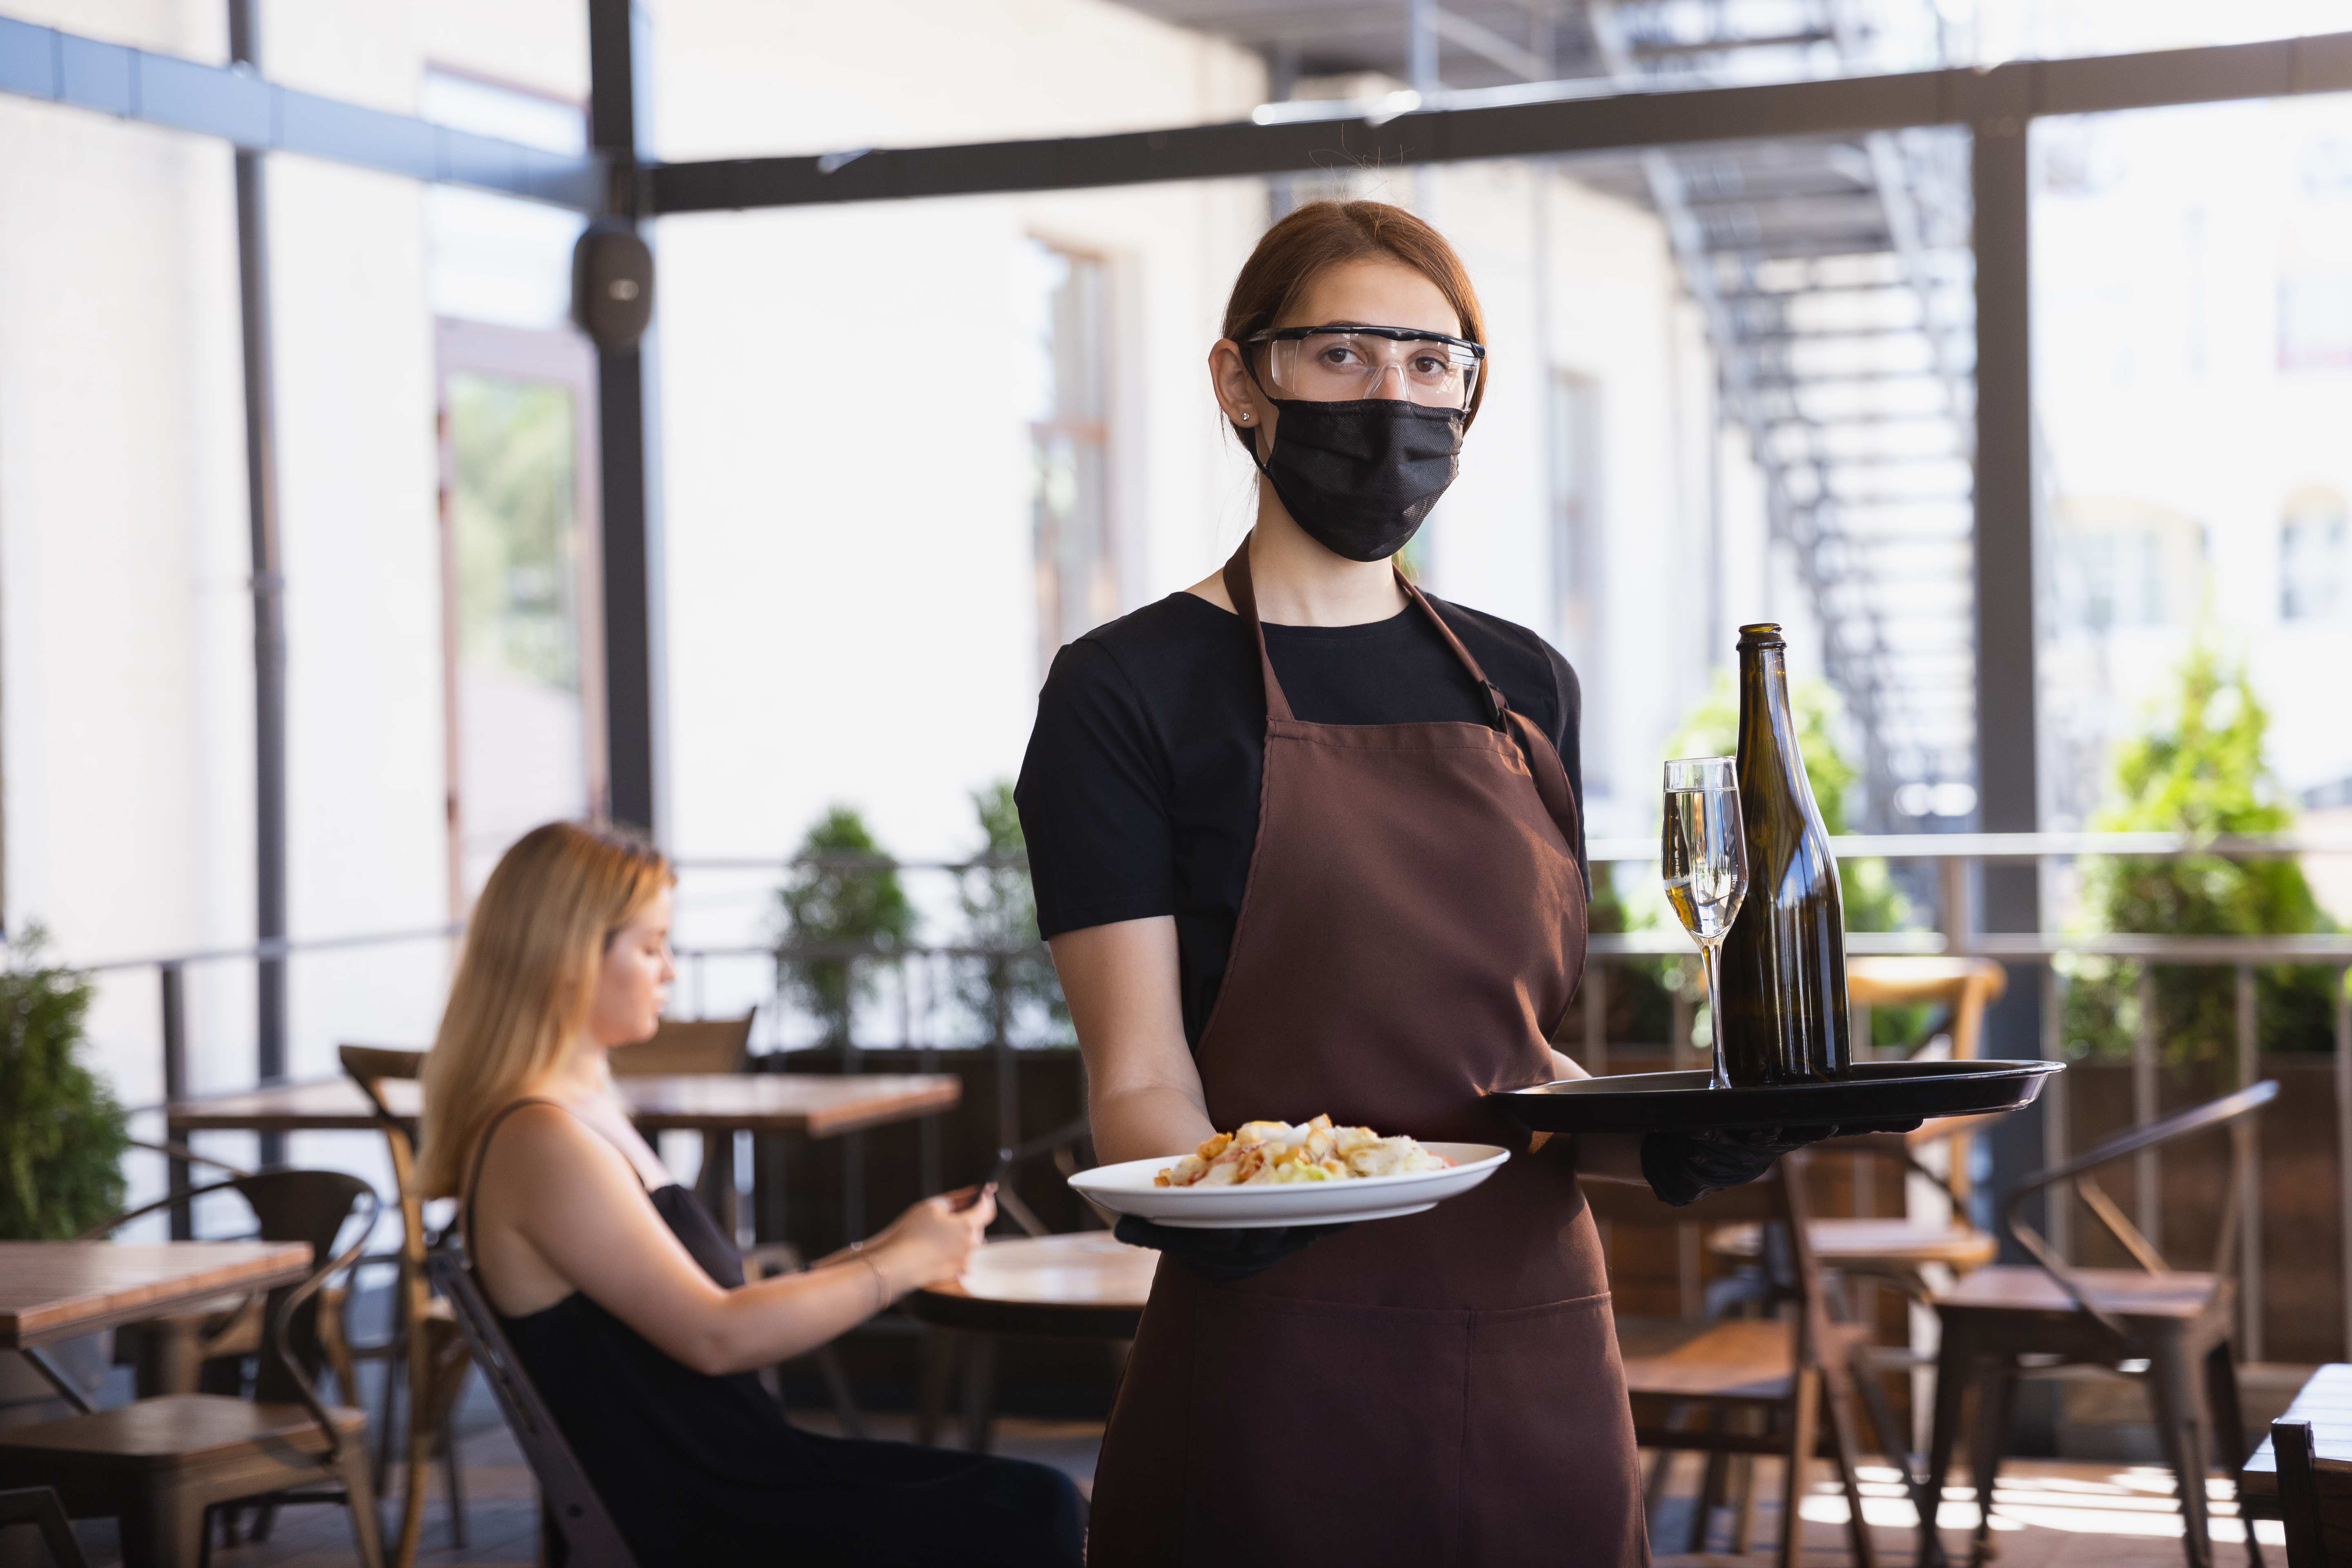 The waitress works in a restaurant in a medical mask, gloves during coronavirus pandemic